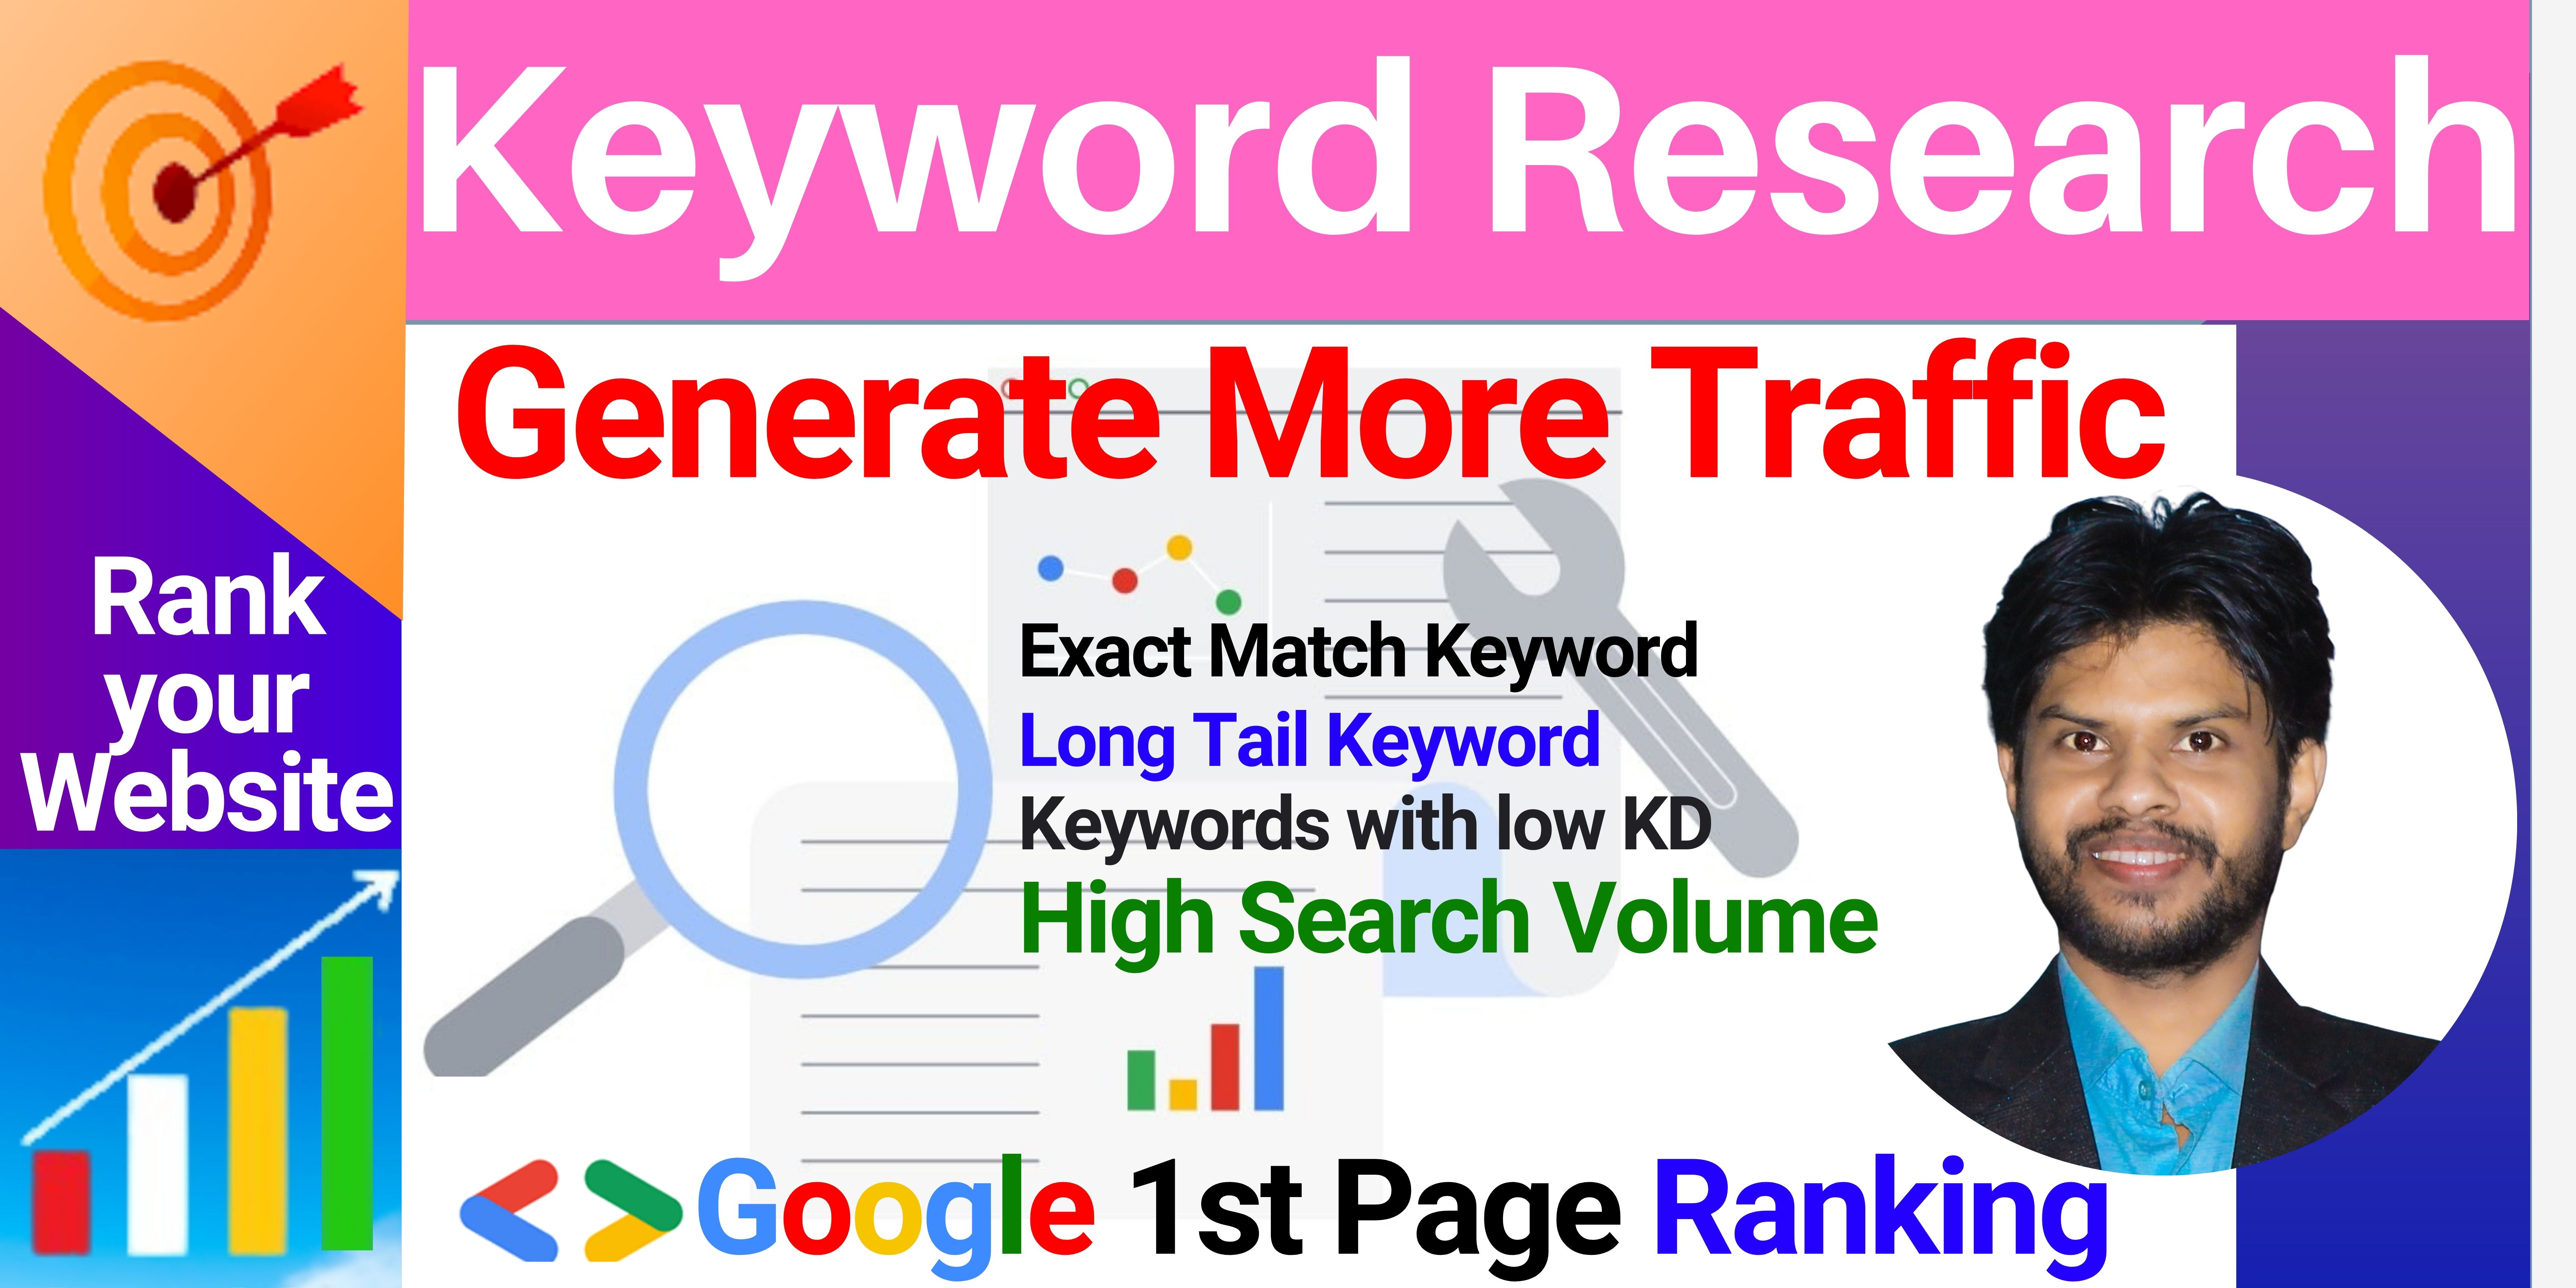 Keyword Research I will find 10 Long Tail Keyword to Generate more Traffic for your website